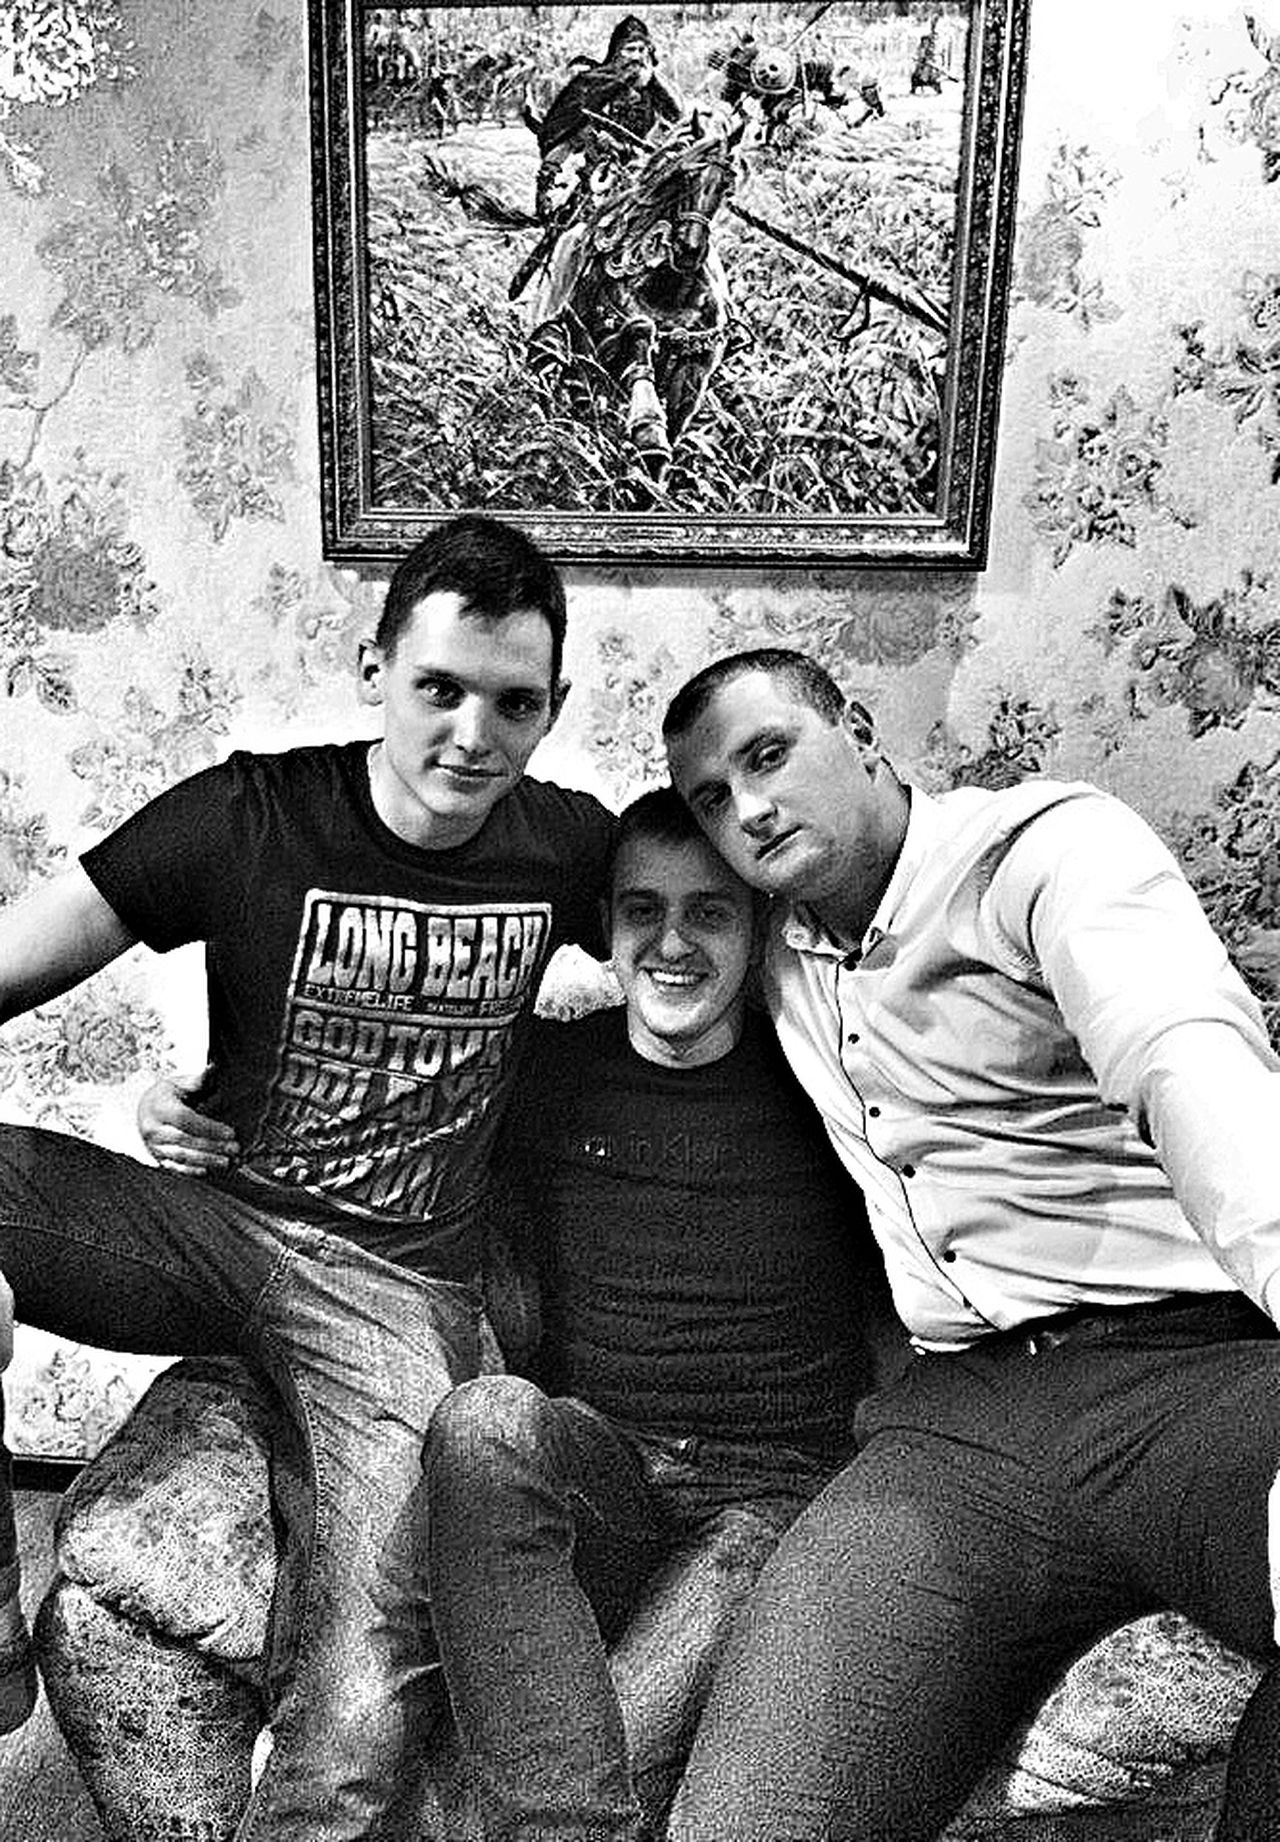 Mafia  Friend B-day Brothers Russia Vrn Only Men B&w Life Sweethome